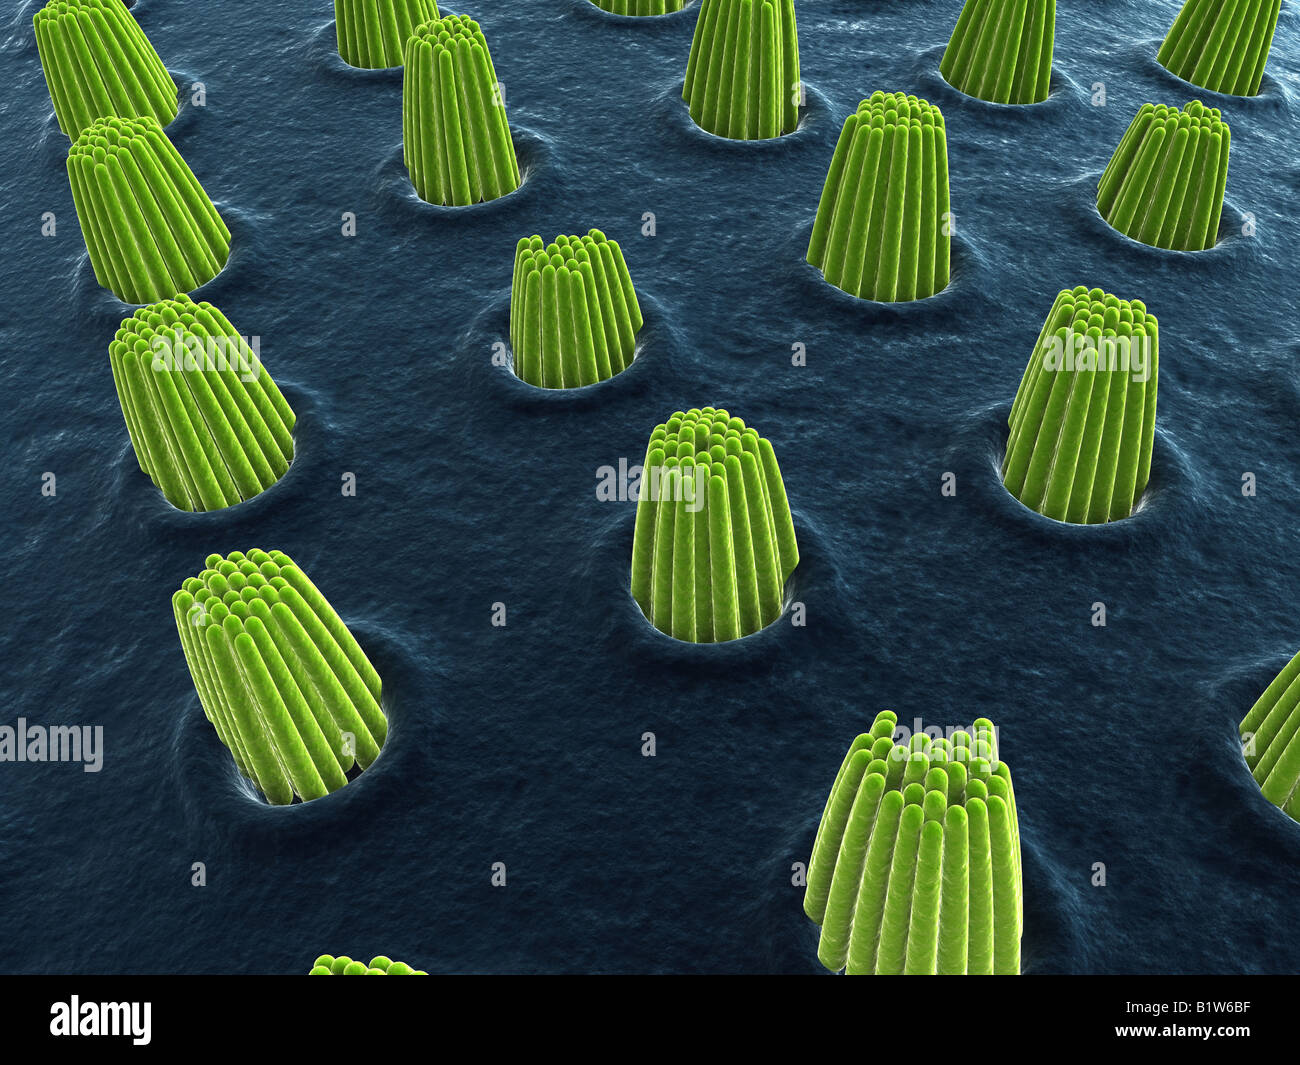 ear cells - Stock Image